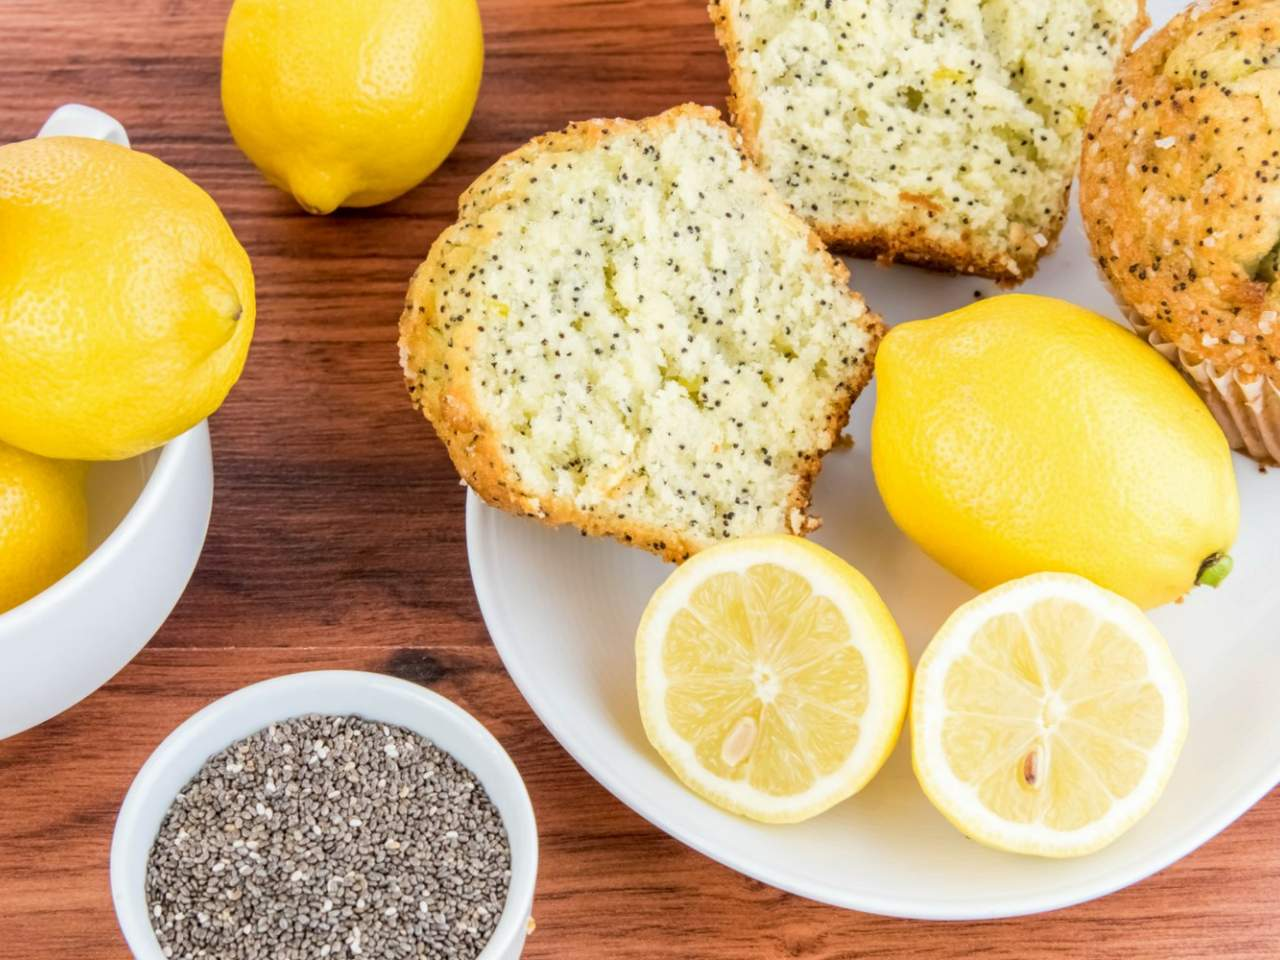 chia seed baked goods